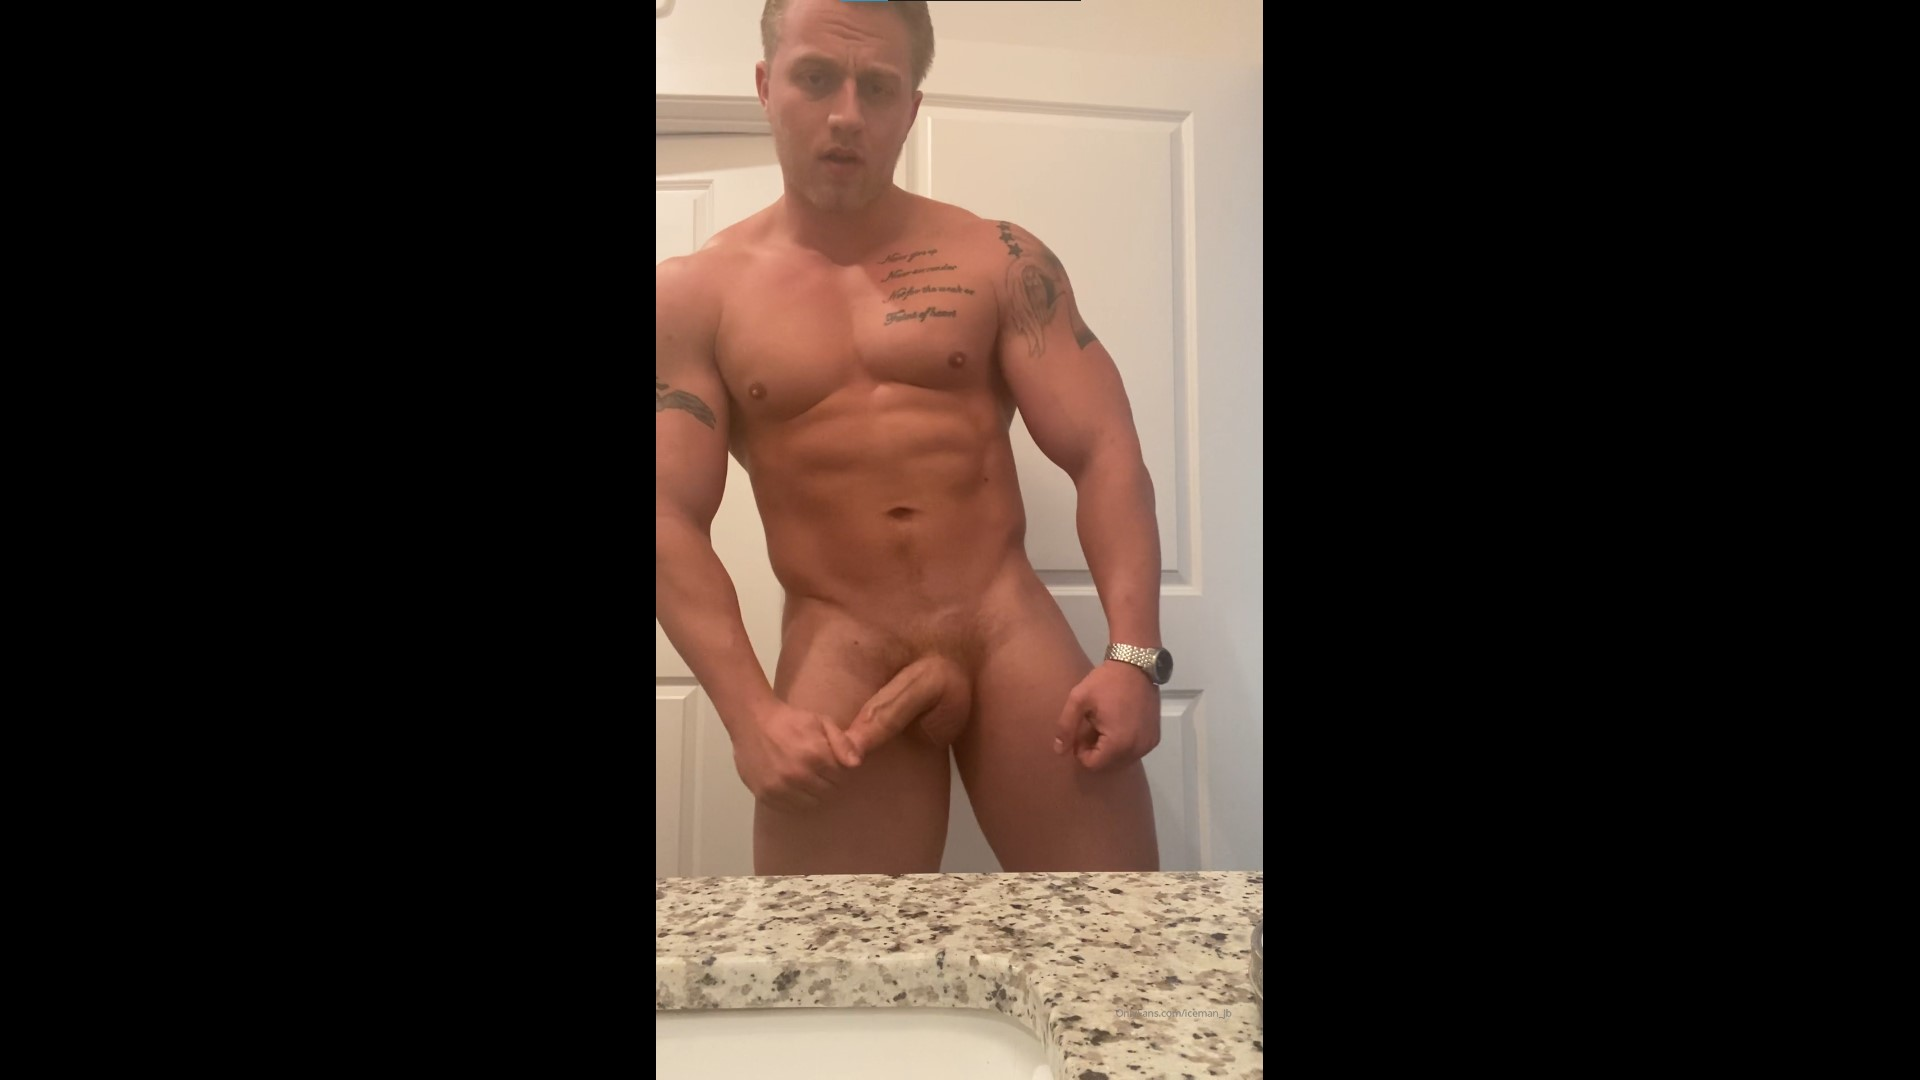 Showing off my body and cock - icemanjb